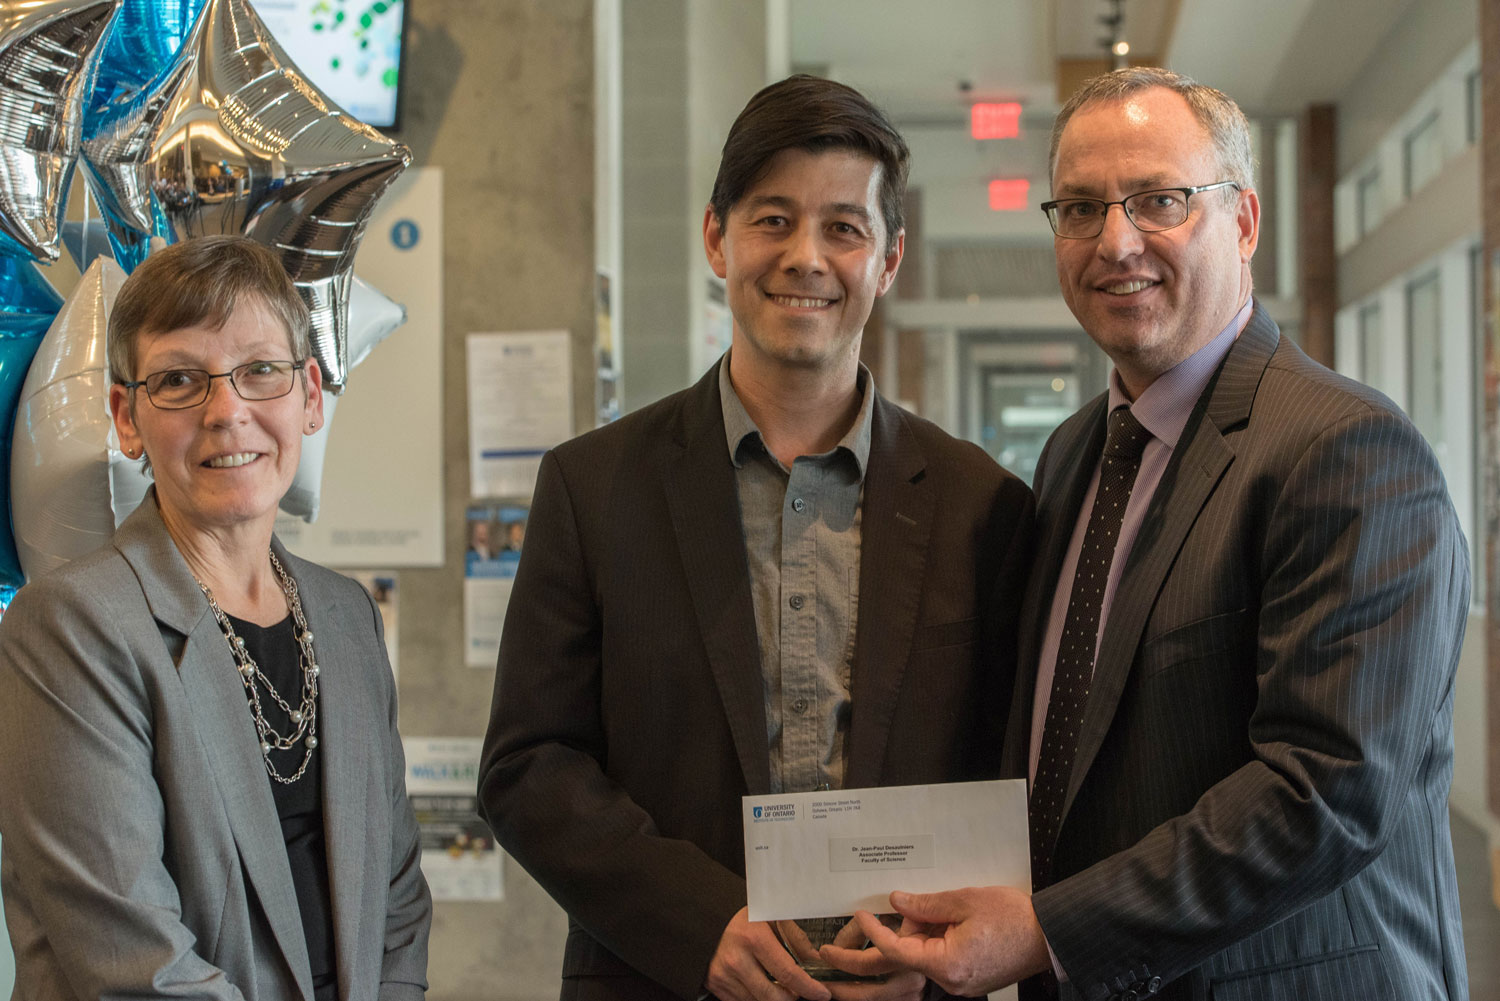 Award for Excellence in Teaching winner Jean-Paul Desaulniers poses with Drs Lori Livingston and Steven Murphy. ${altNumber}